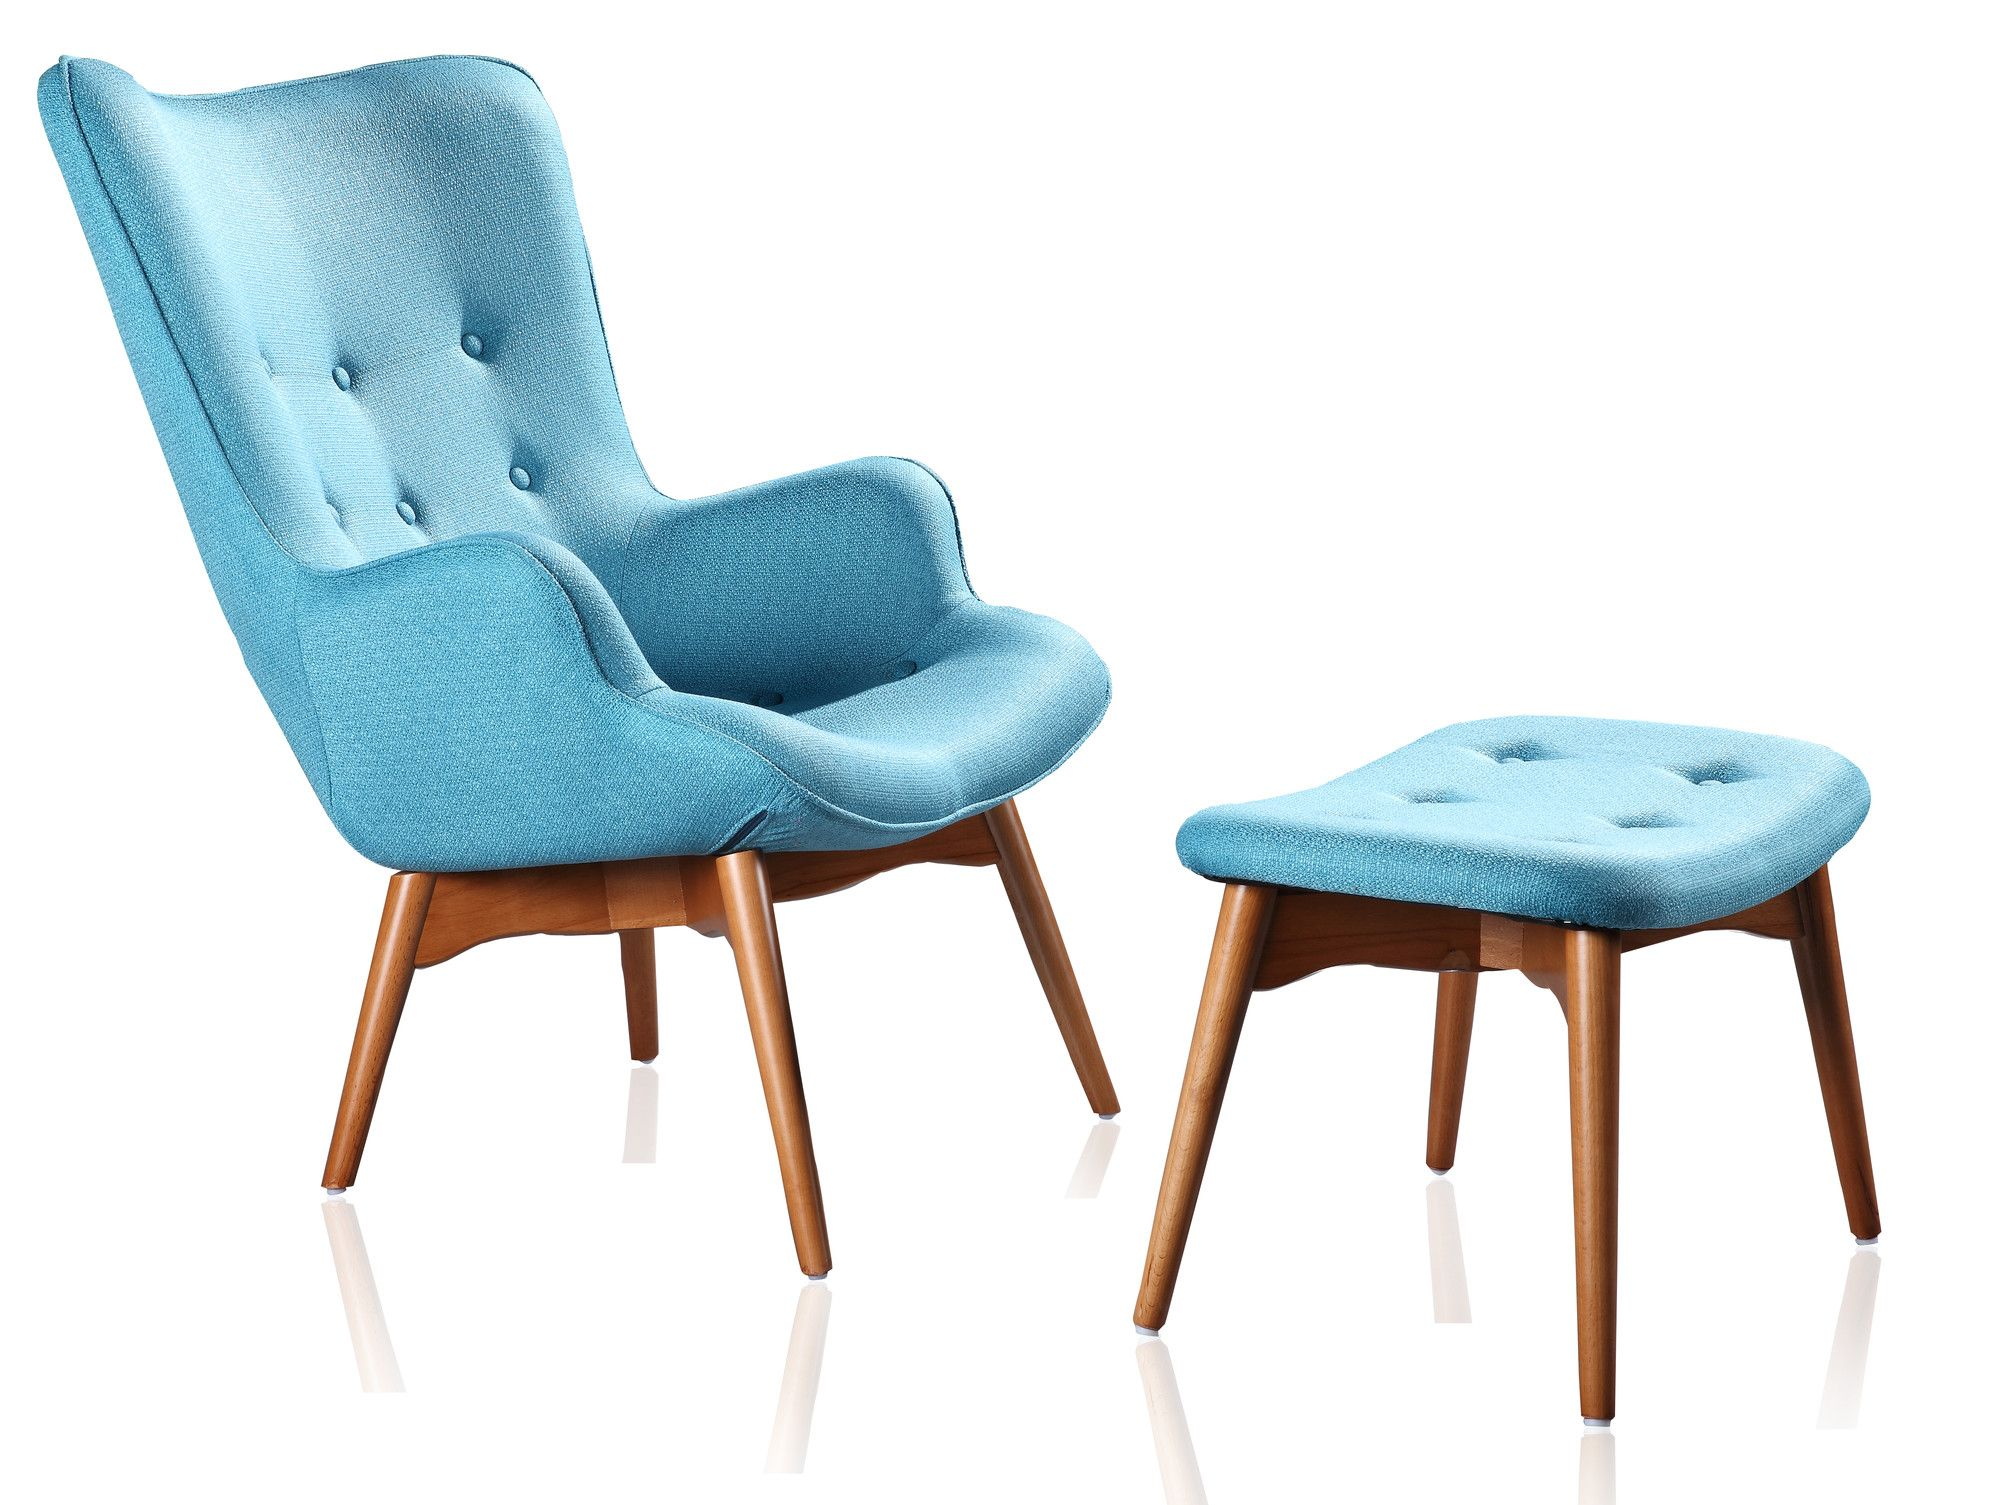 International Design Huggy Mid Century Chair & Ottoman Set & Reviews | Wayfair